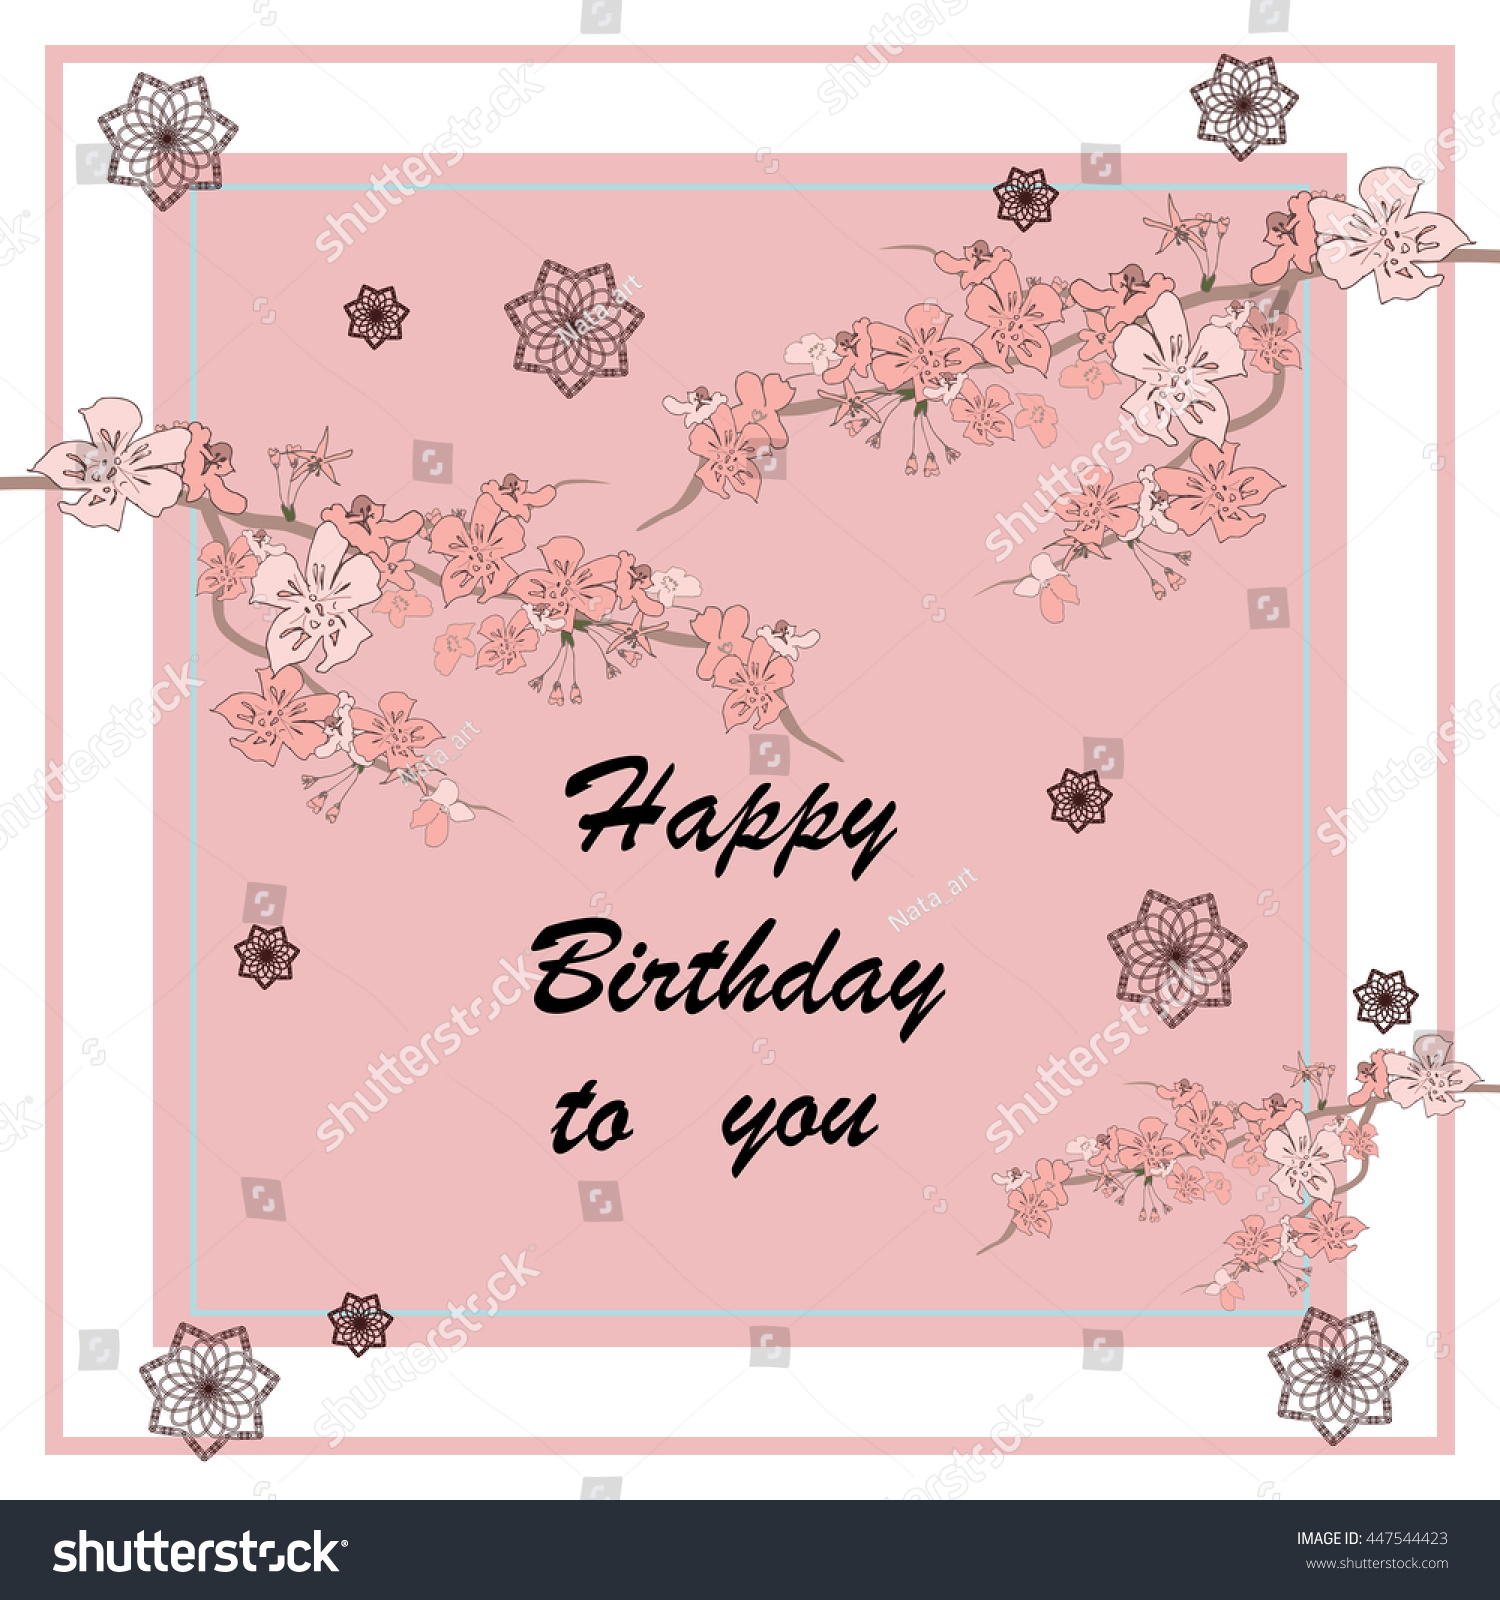 Happy Birthday Card On A Pink Background Vector With Japanese Chery